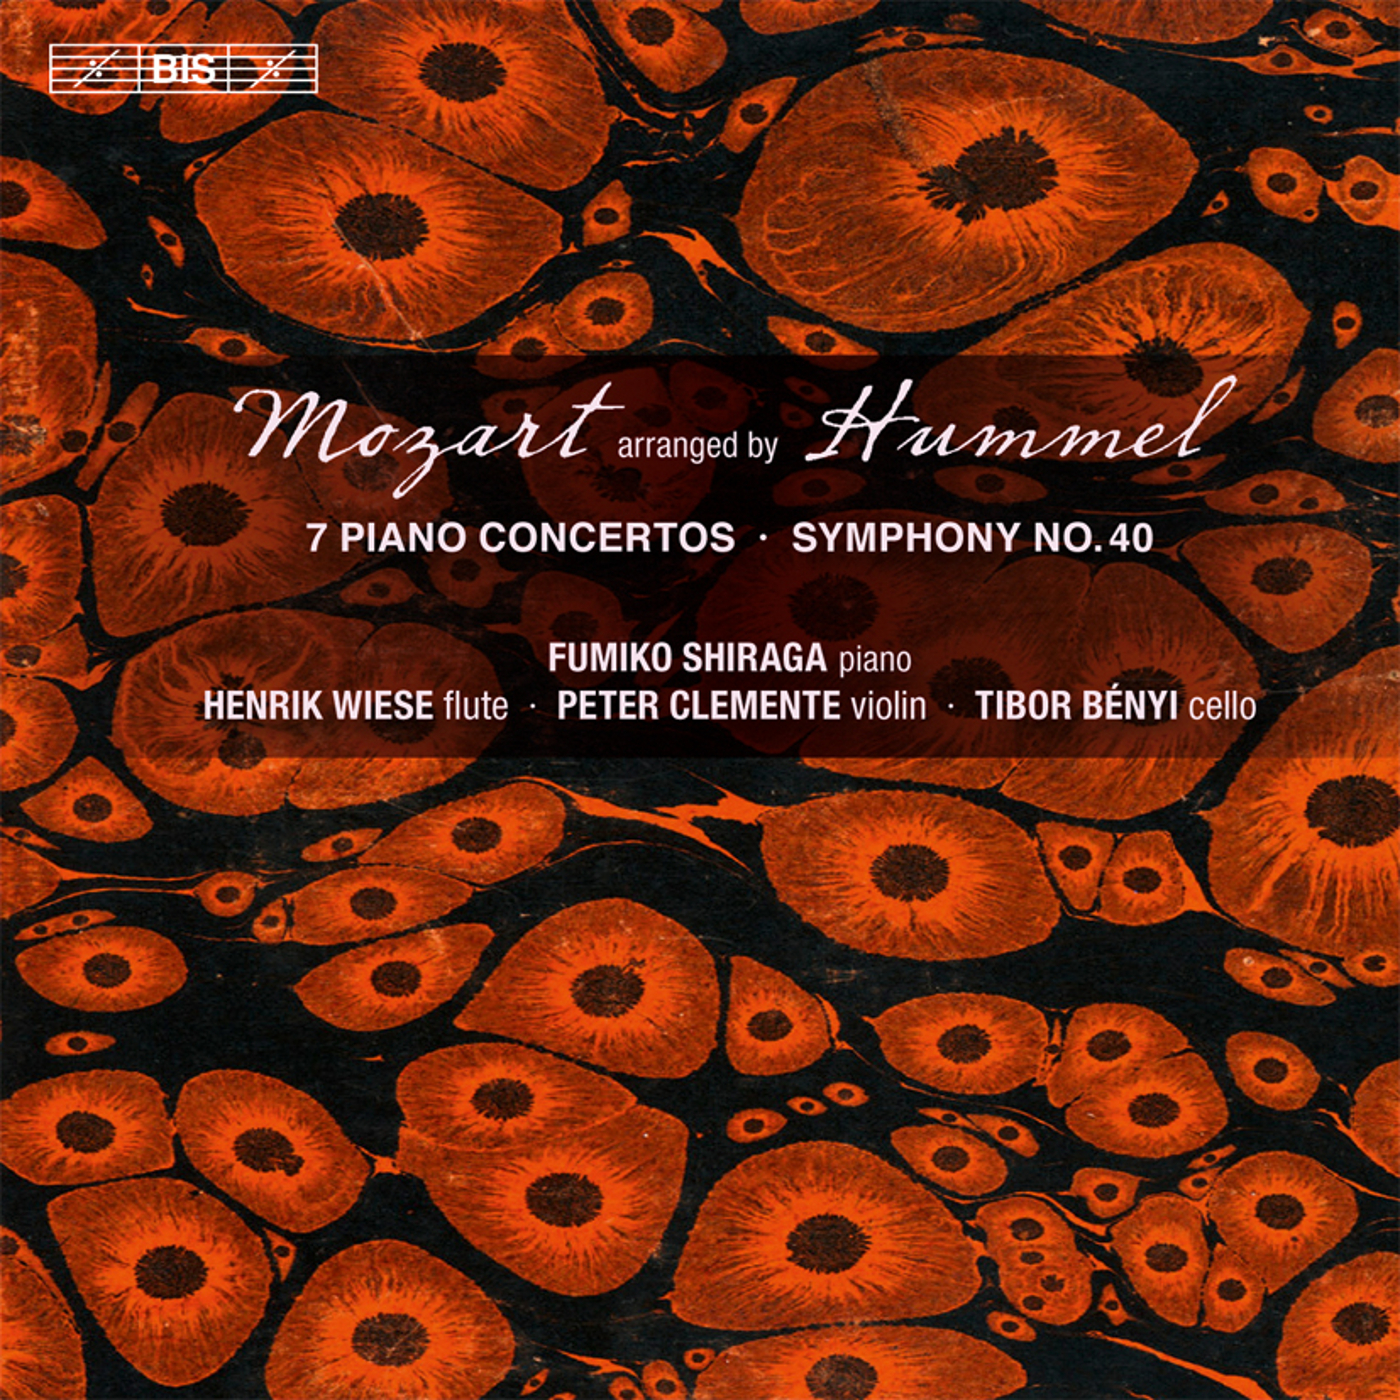 Piano Concerto No. 18 in B-Flat Major, K. 456 (arr. J.N. Hummel for piano, flute, violin and cello), Piano Concerto No. 18 in B-Flat Major, K. 456 (arr. J.N. Hummel for piano, flute, violin and cello): I. Allegro vivace